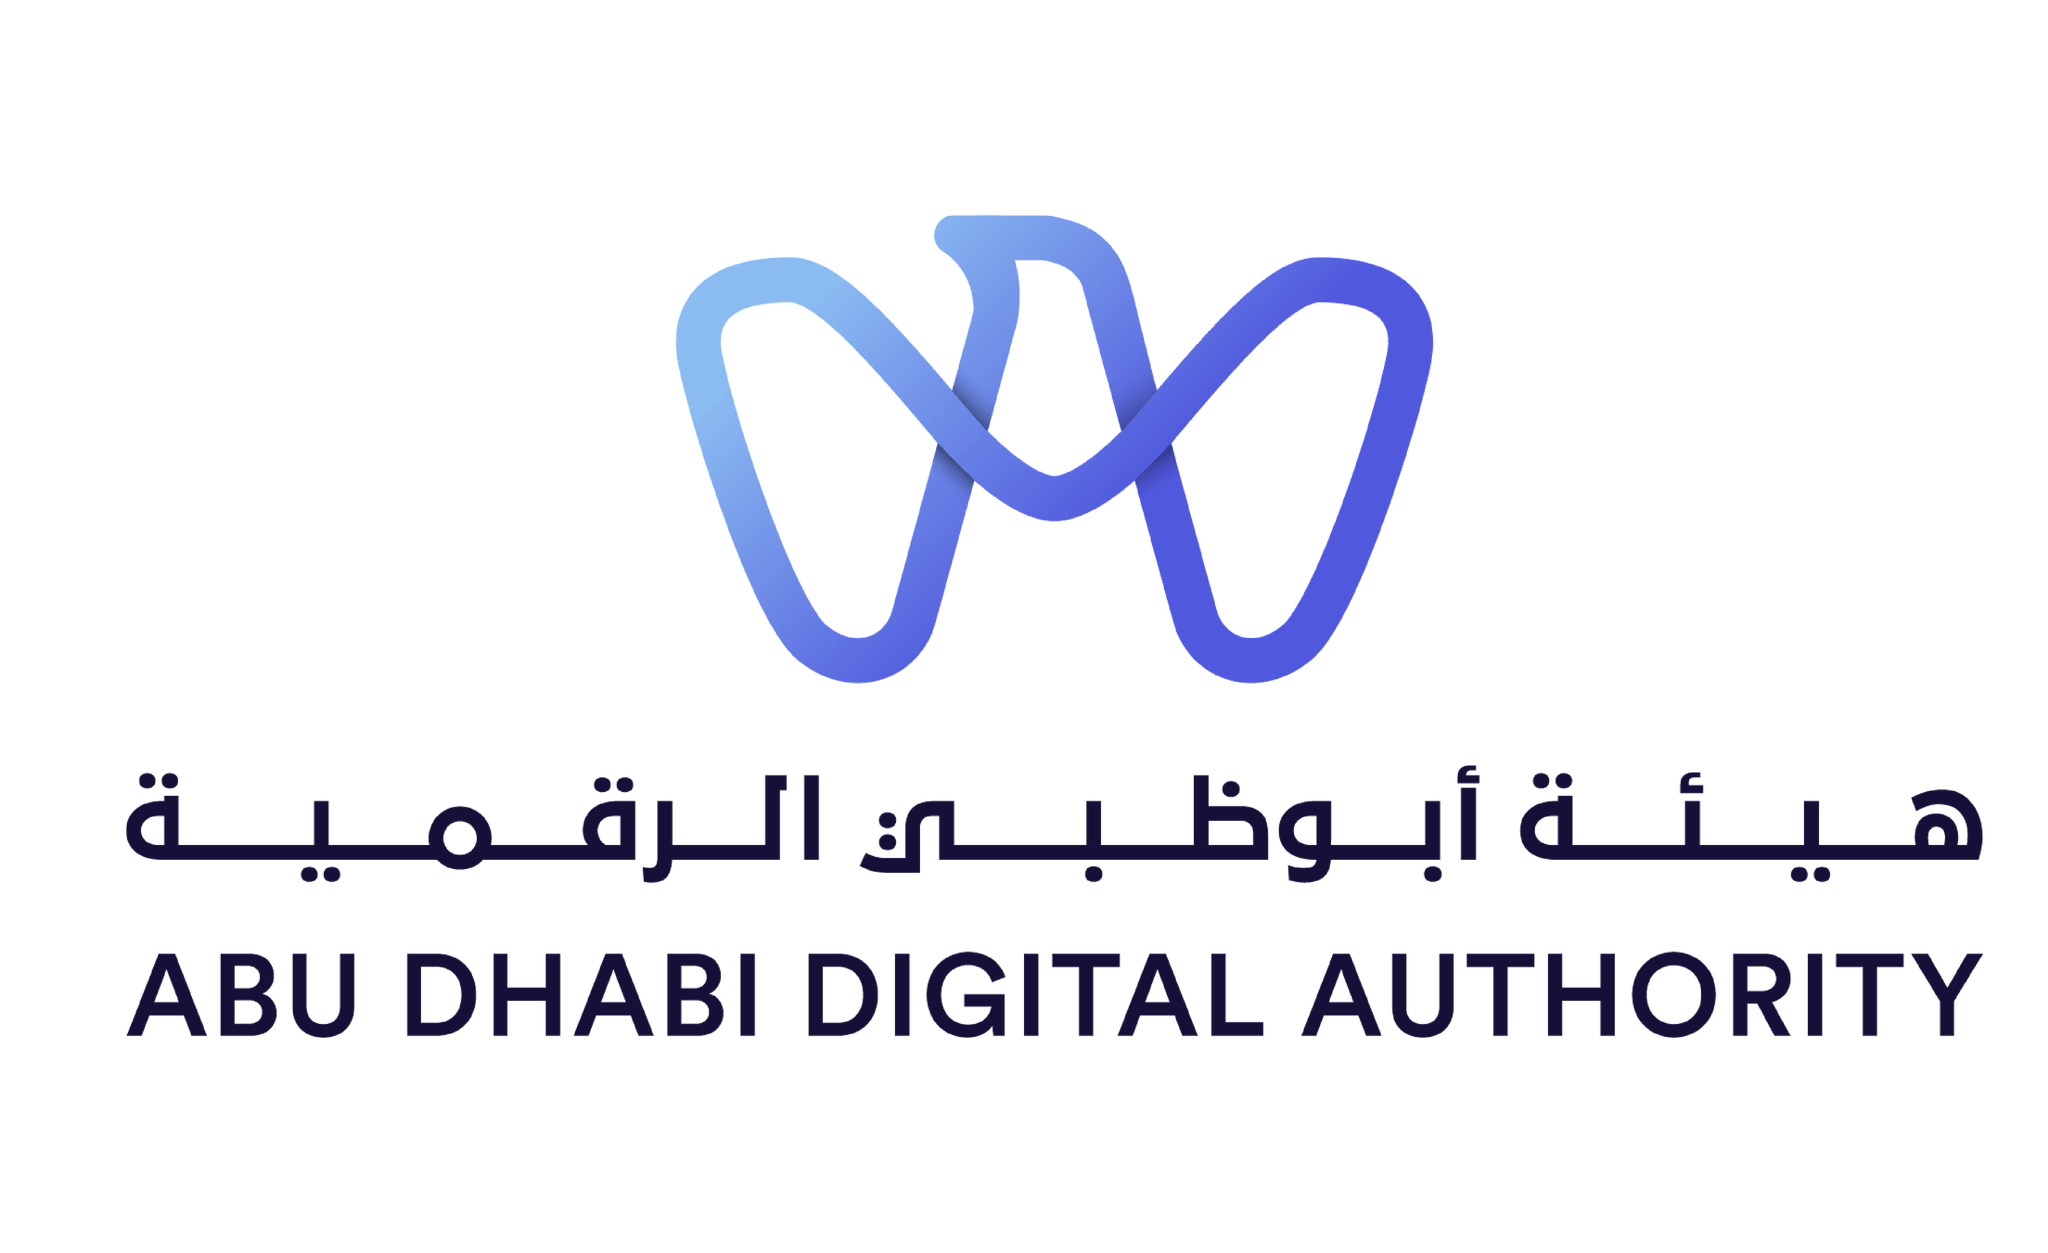 Abu Dhabi Digital Authority (ADDA)